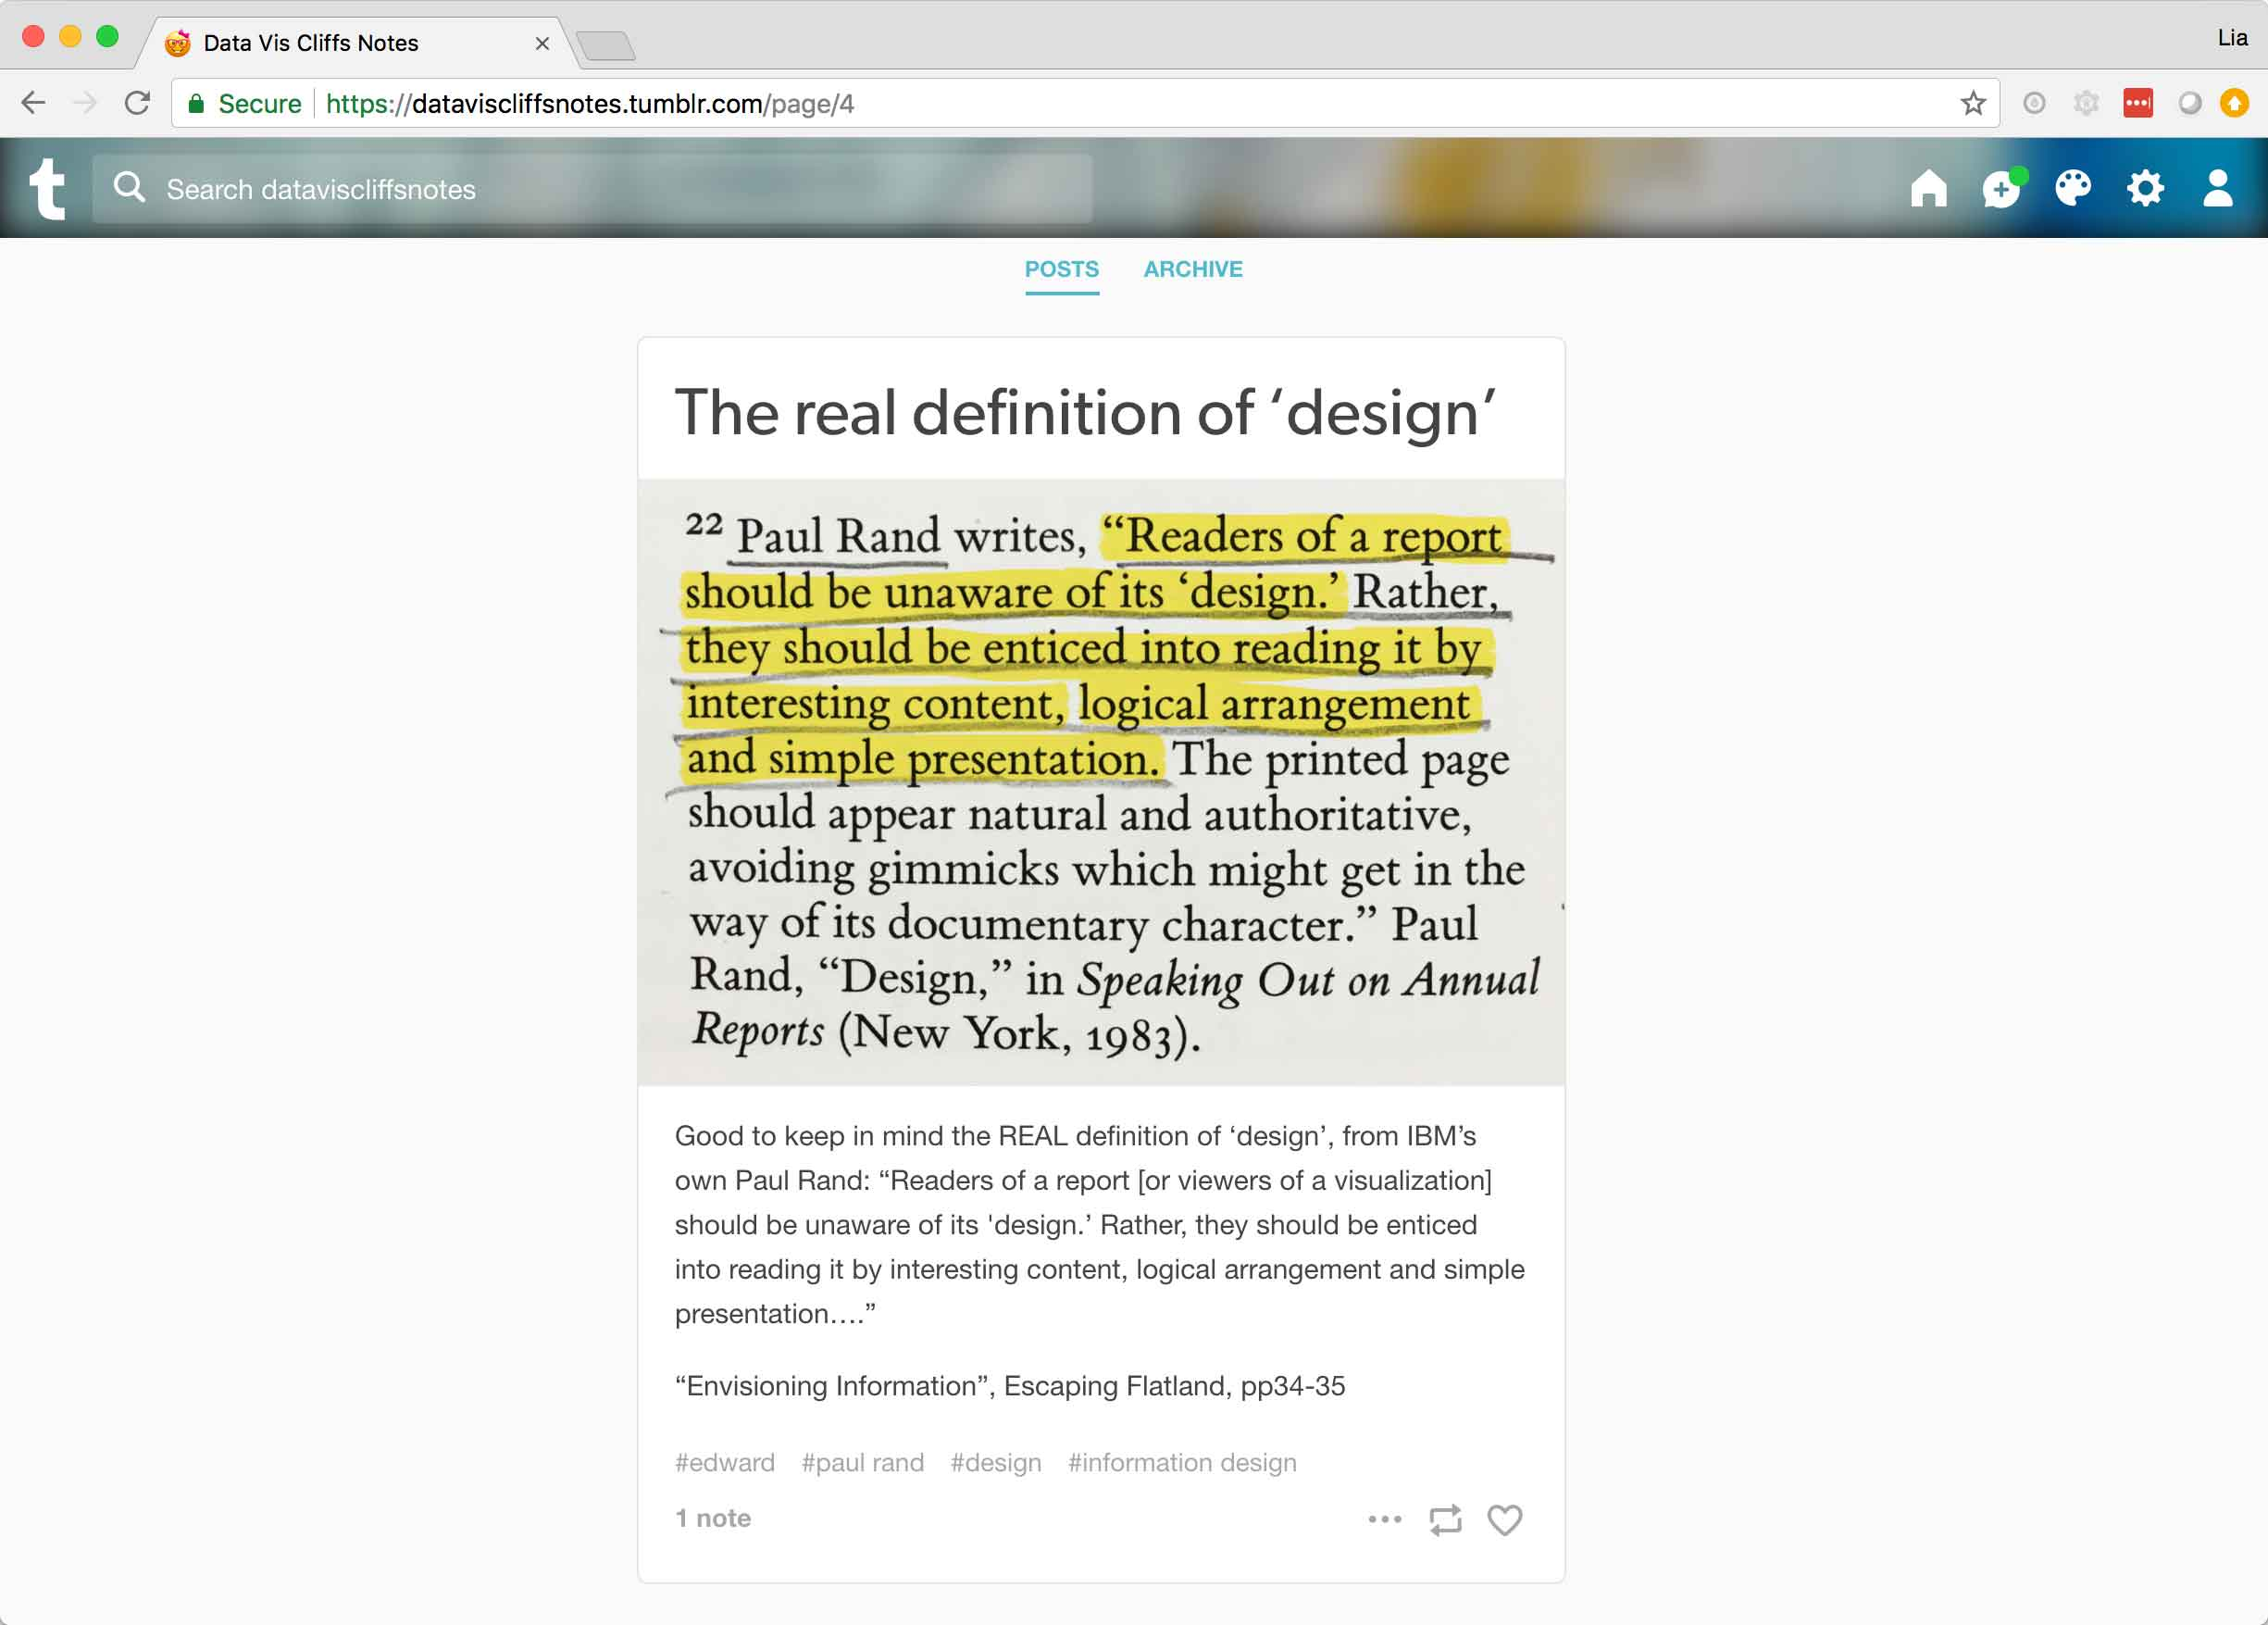 An example post about the real definition of design according to Paul Rand.